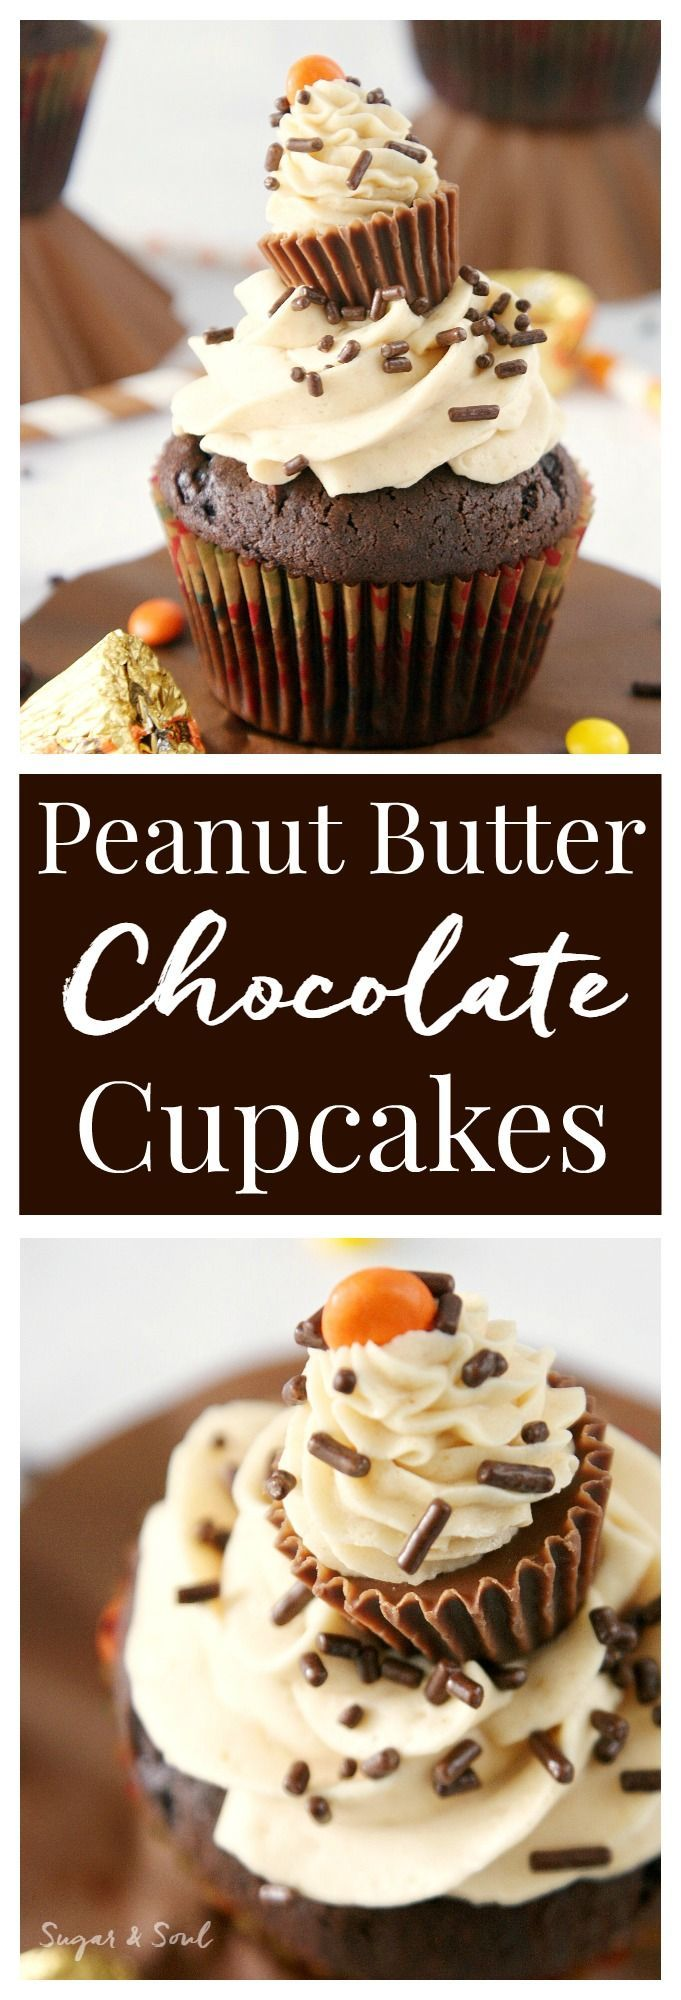 about Fancy Cupcakes on Pinterest | Cupcake icing techniques, Cupcakes ...